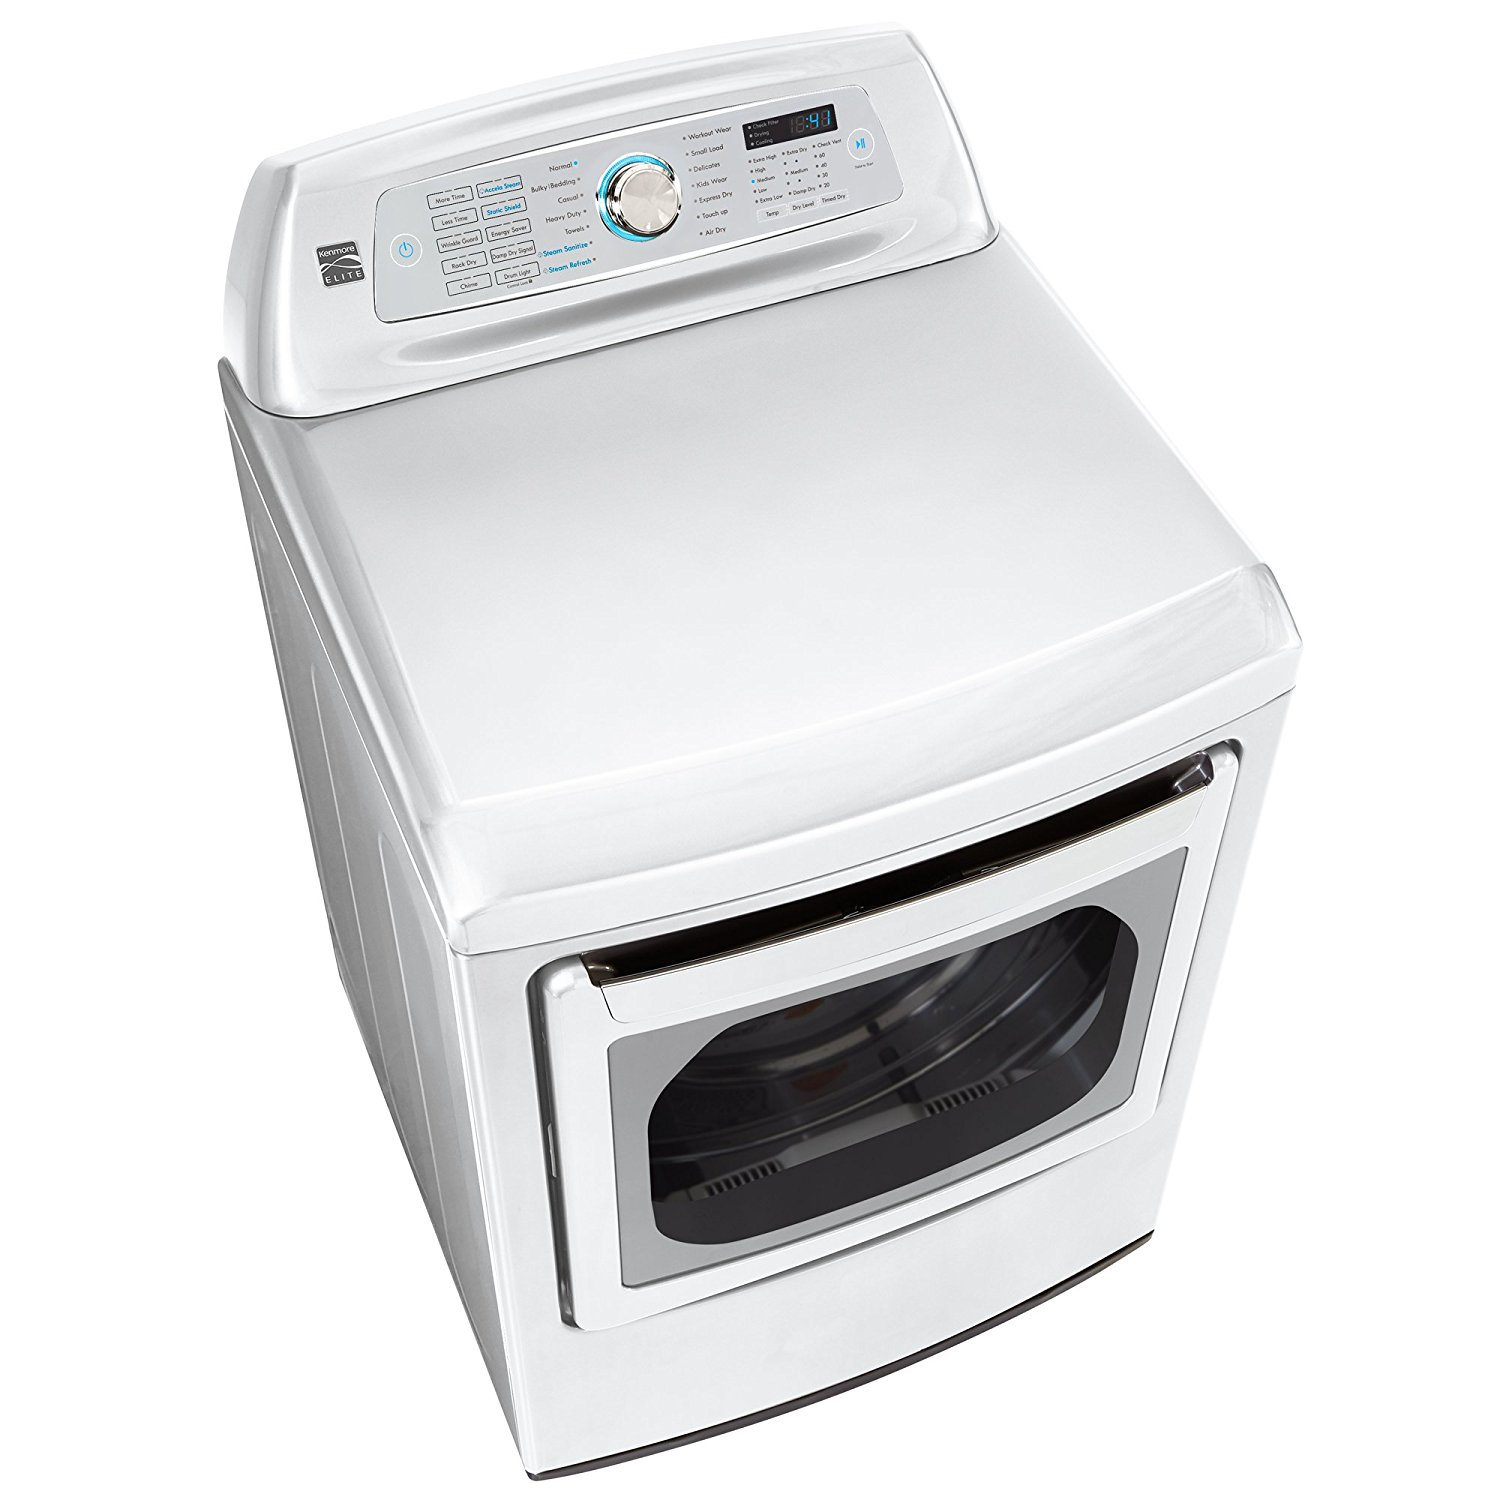 kenmore's more affordable option